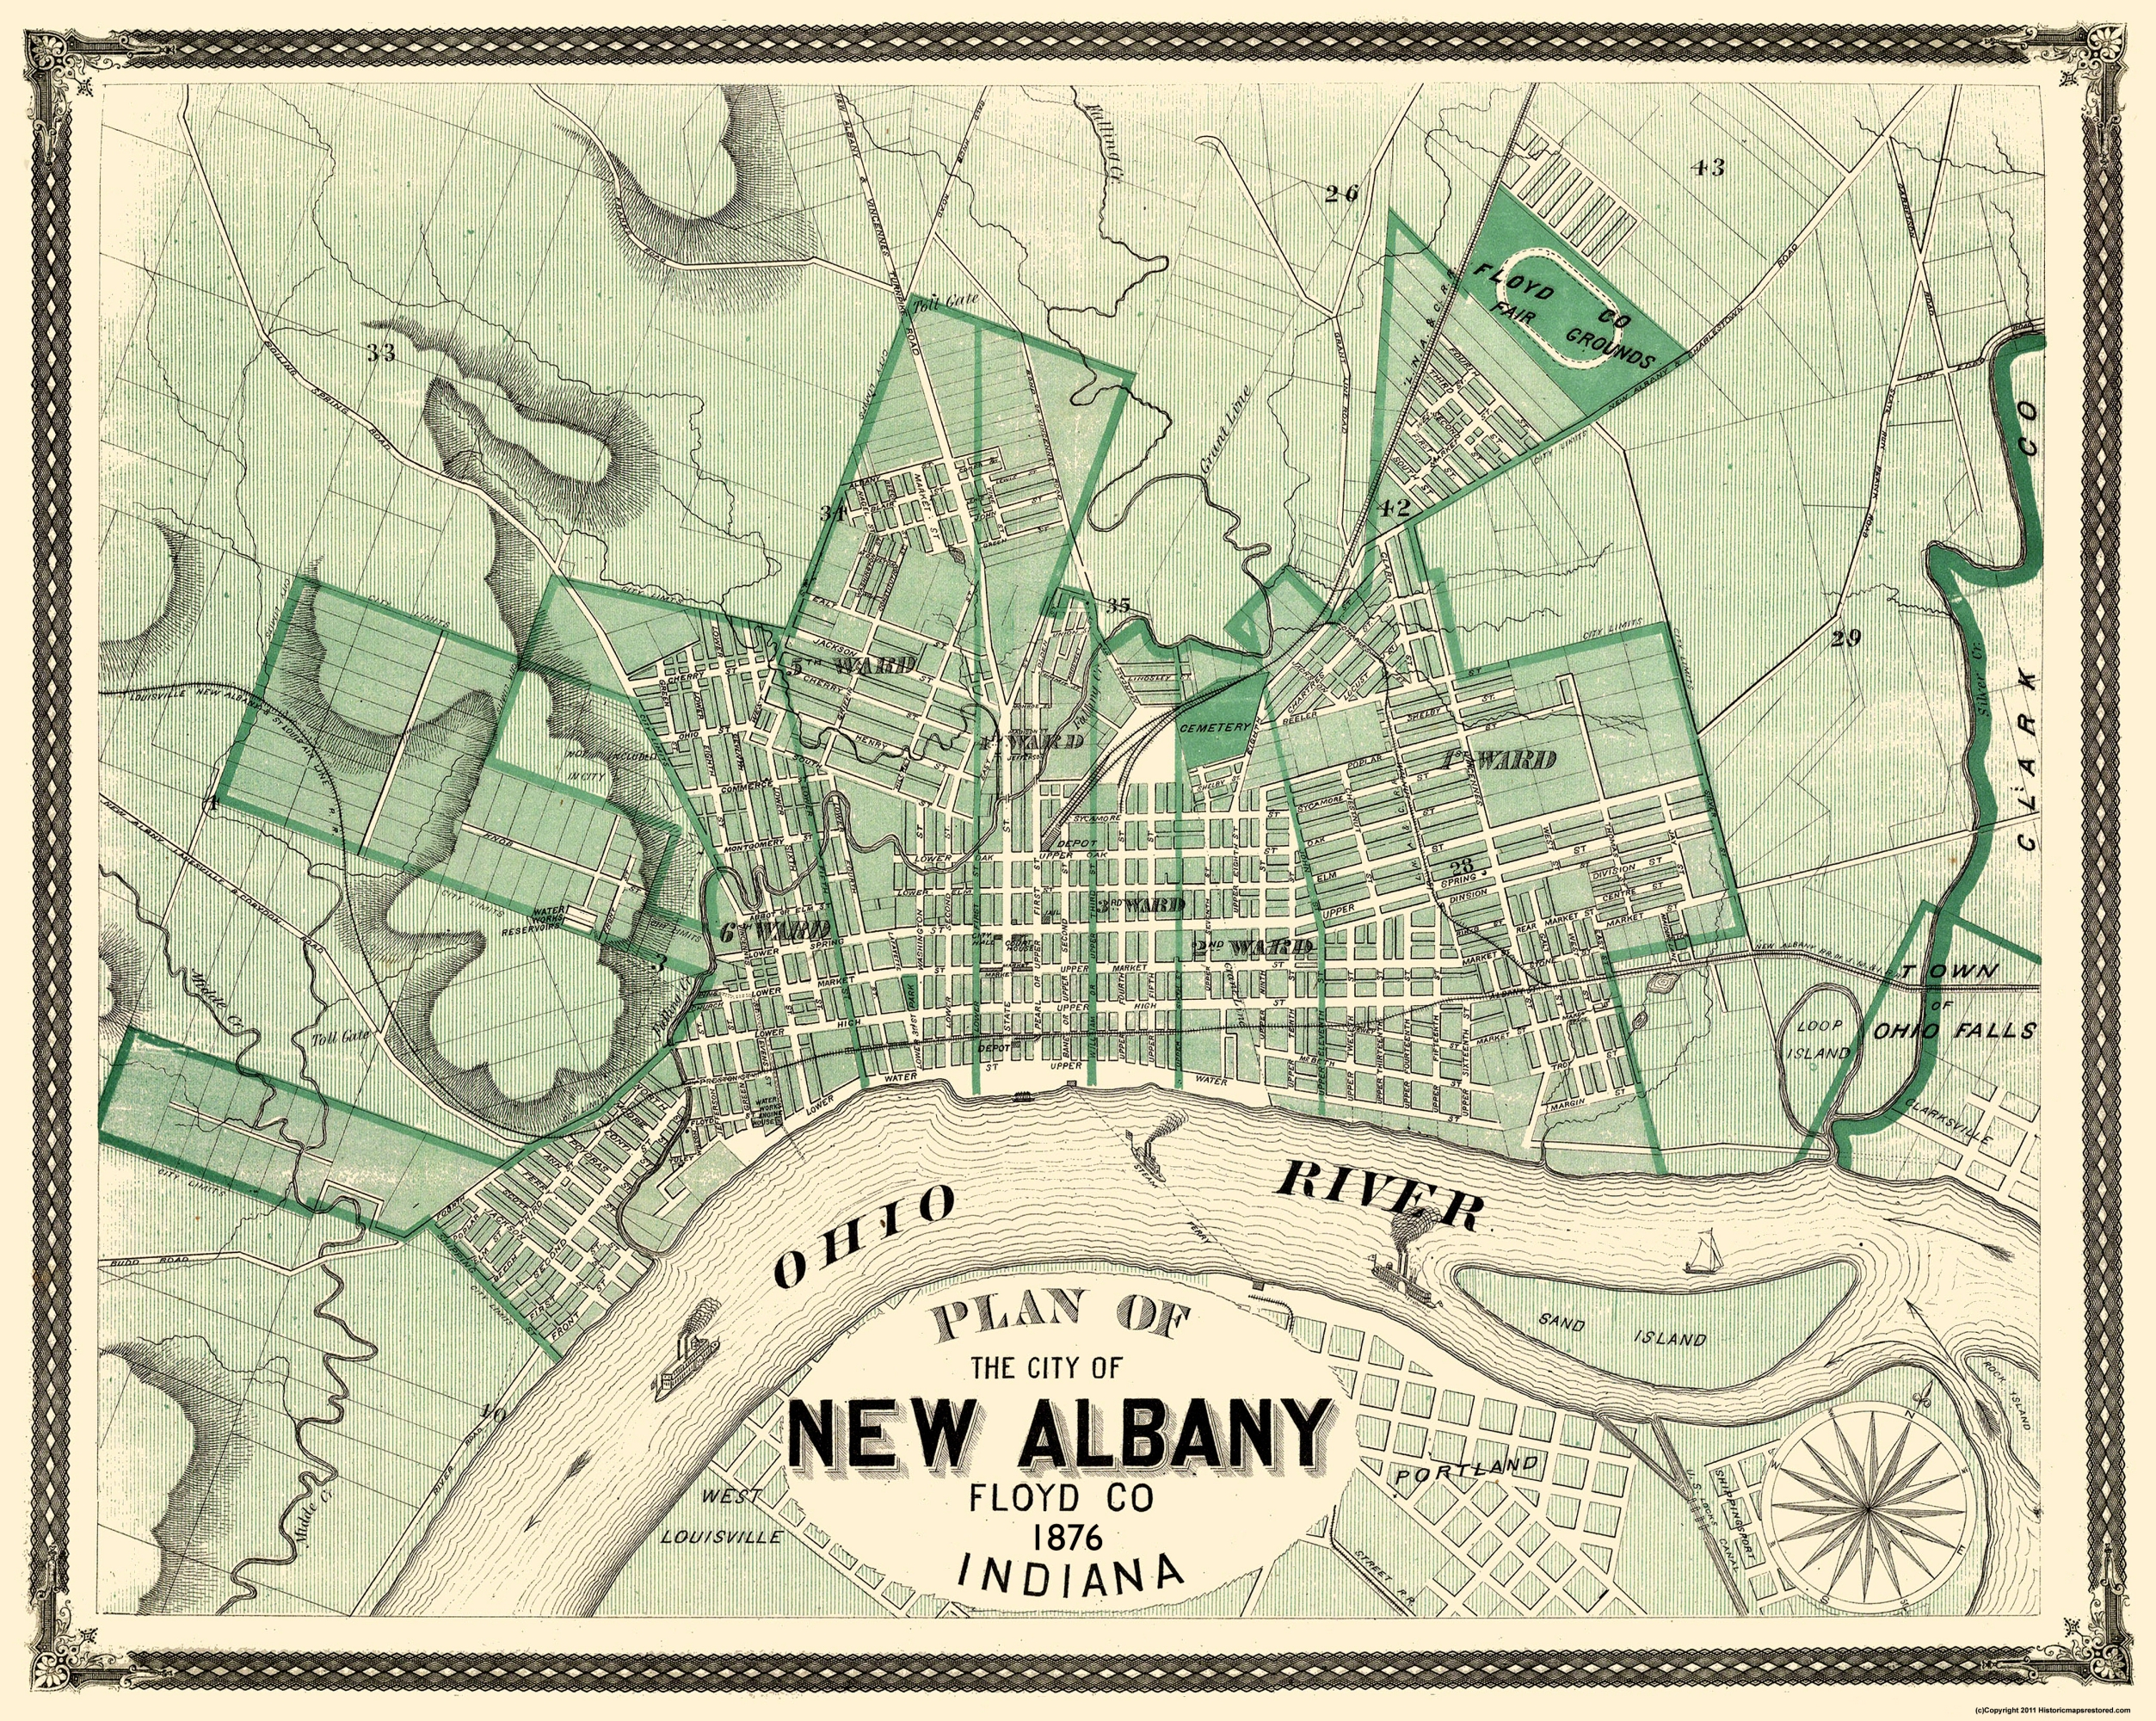 Albany Indiana Map.Old City Map New Albany Indiana 1876